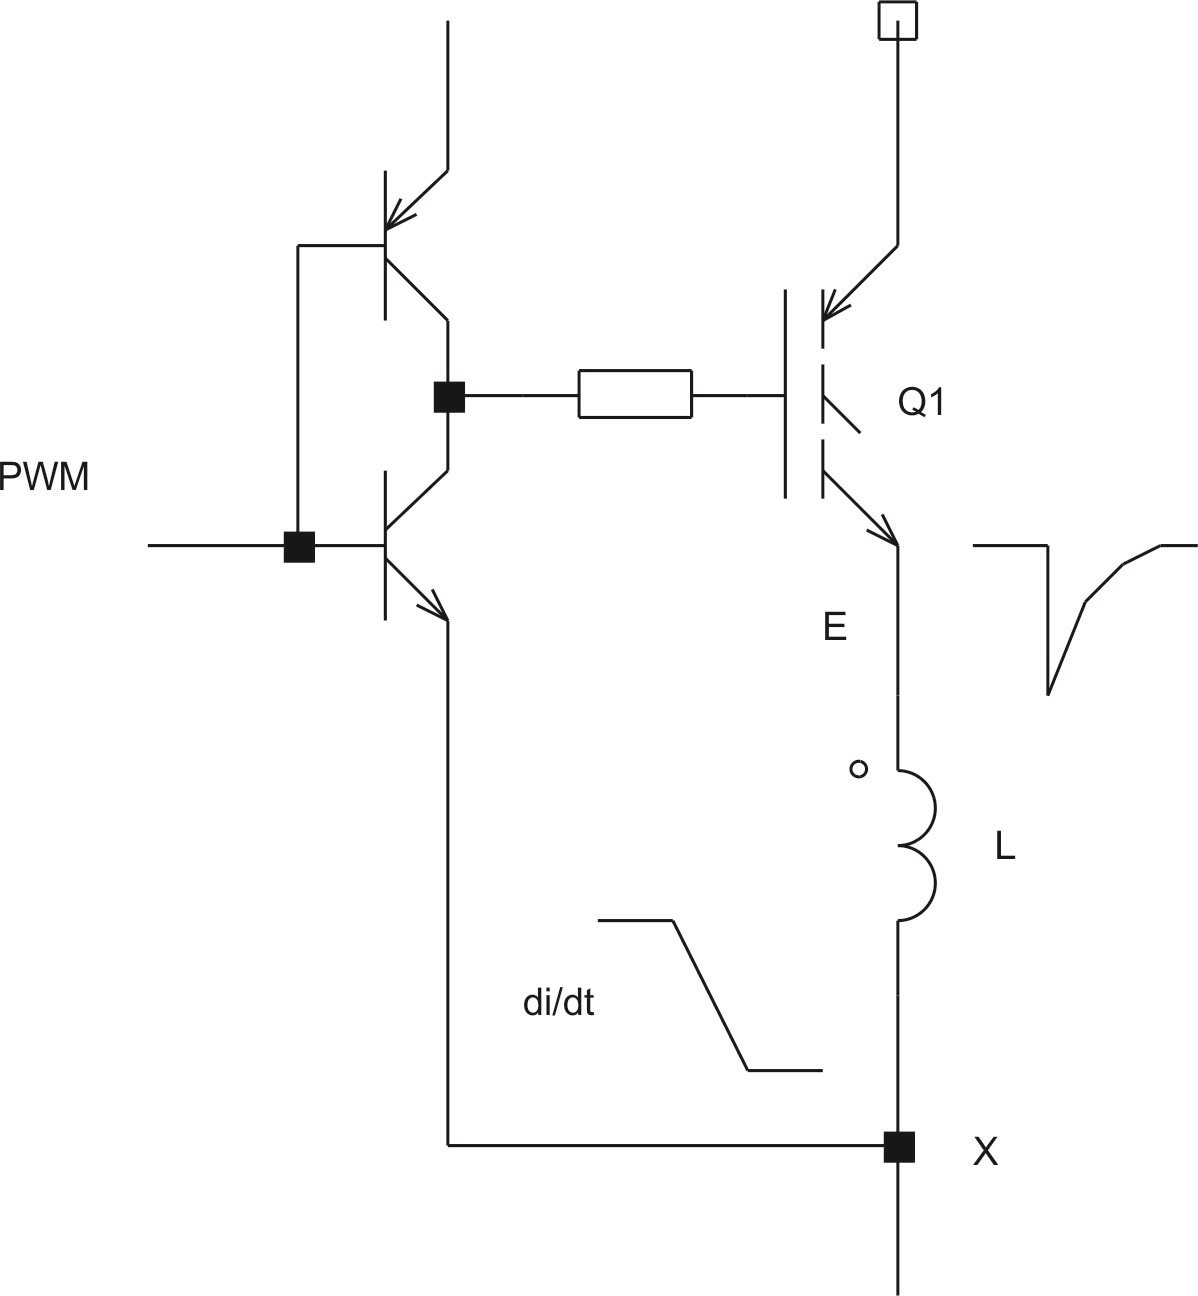 Murata Power Solutions Inc News From Escom Dc Supply Miniature Isolated Diagram And Circuit Determining Converter Requirements For Gate Drive Applications